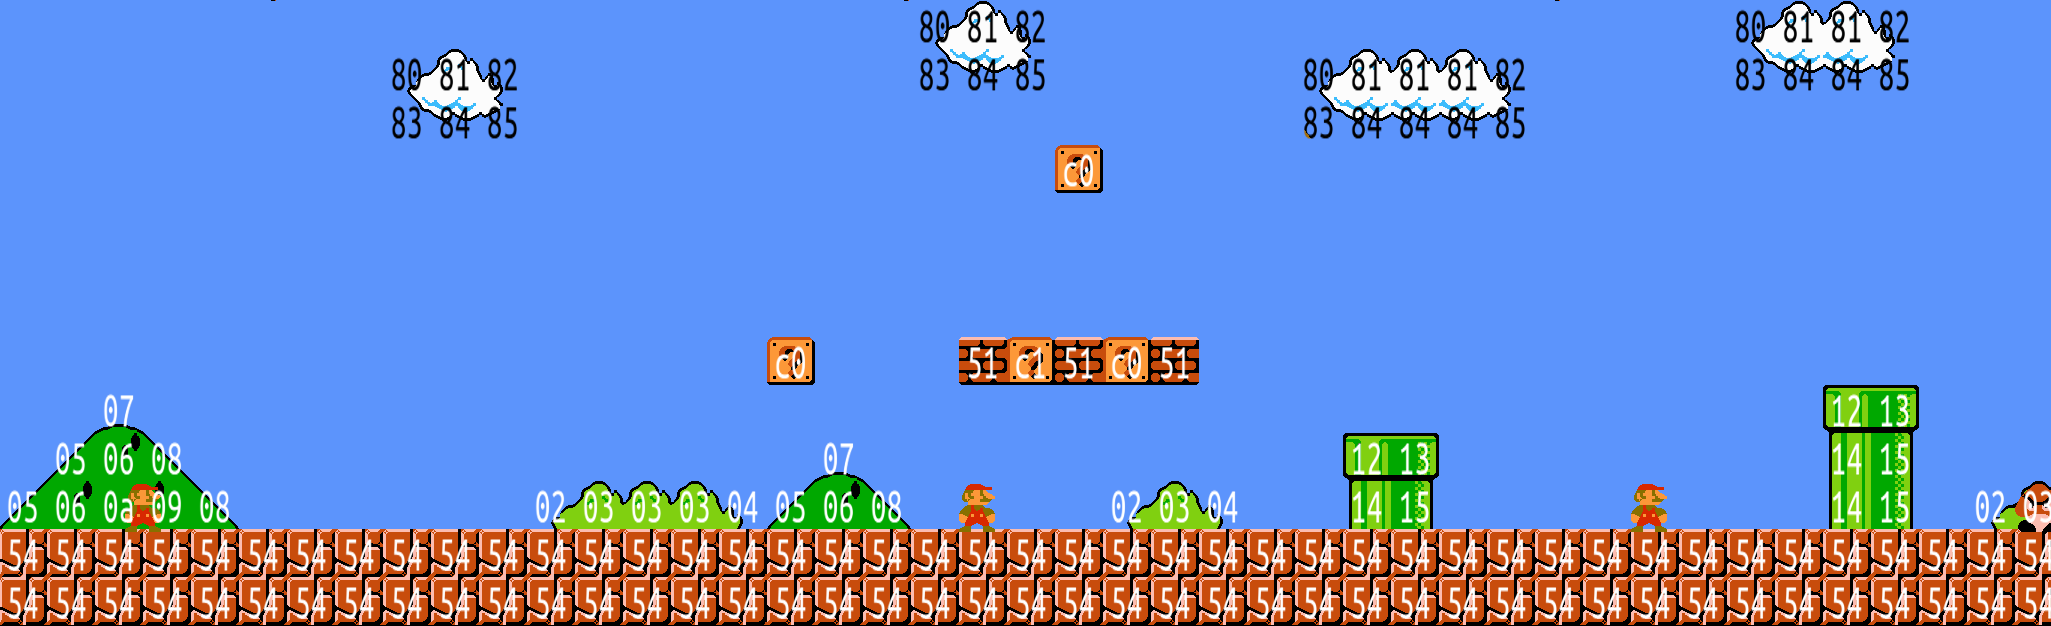 Extracting Super Mario Bros levels with Python - Matt\'s ramblings